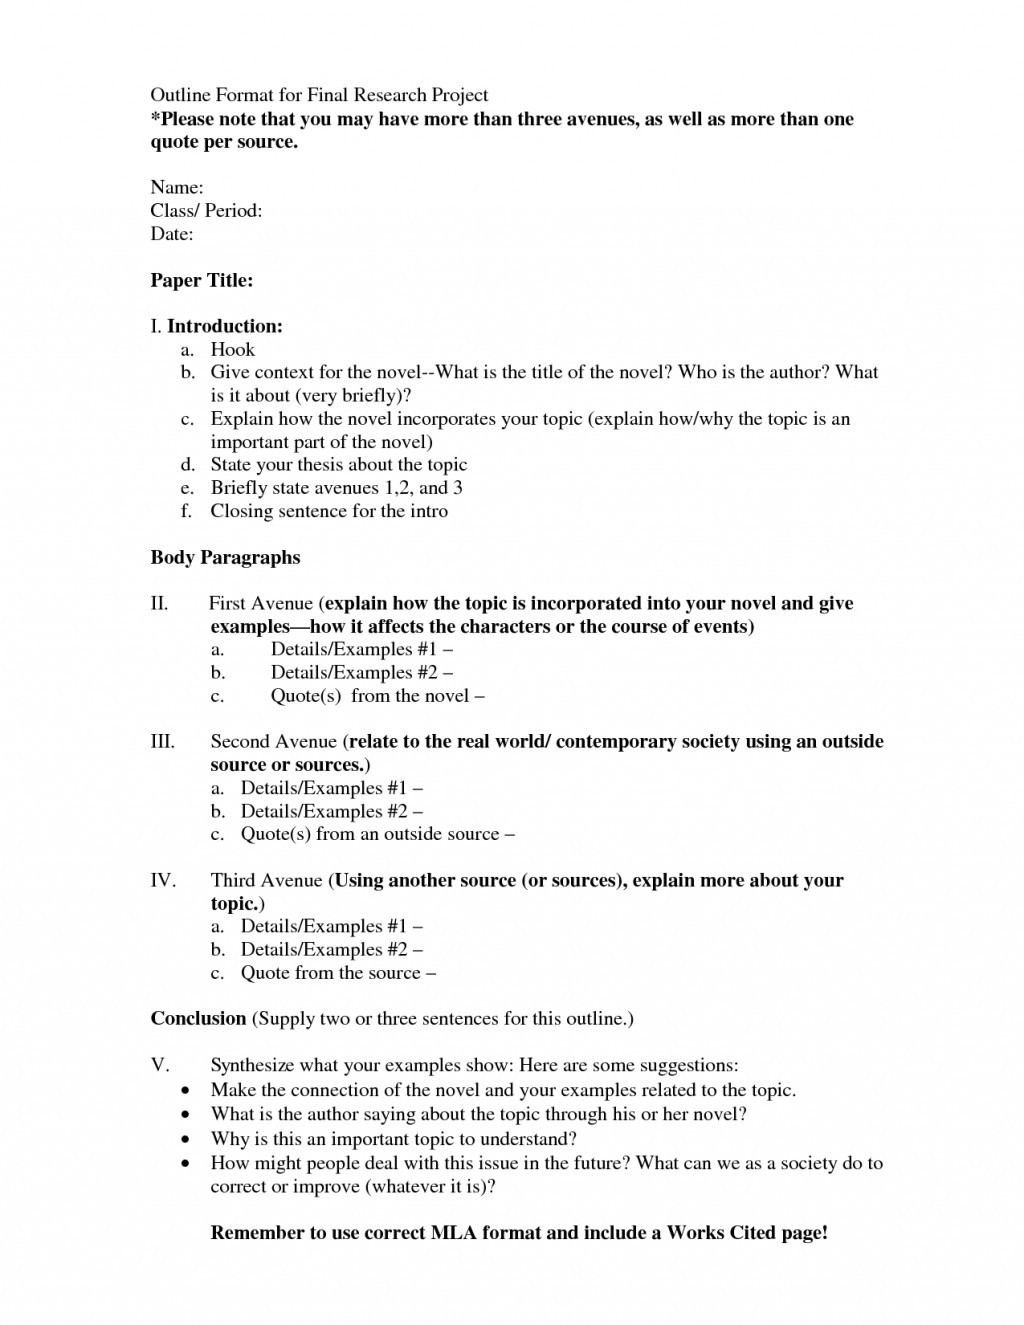 003 Sample Outline Research Project 477737 English Beautiful Paper Large